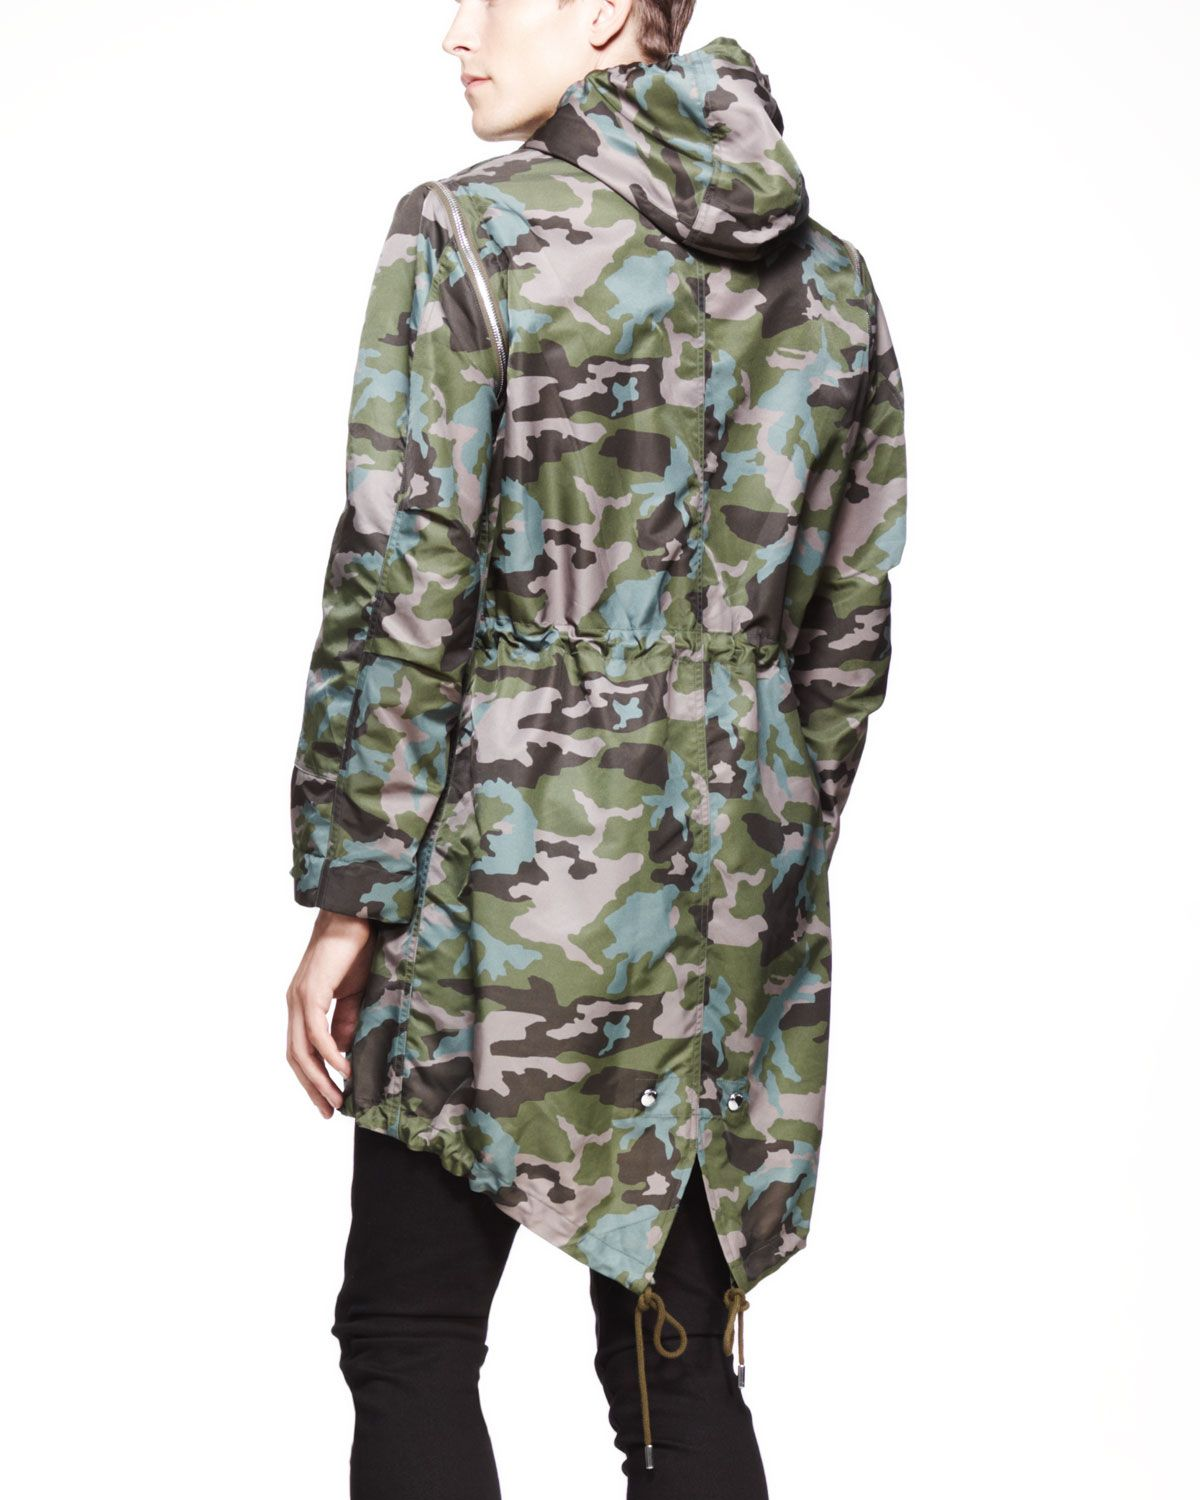 Givenchy Fishtail Parka | references 01 | Pinterest | Fishtail parka